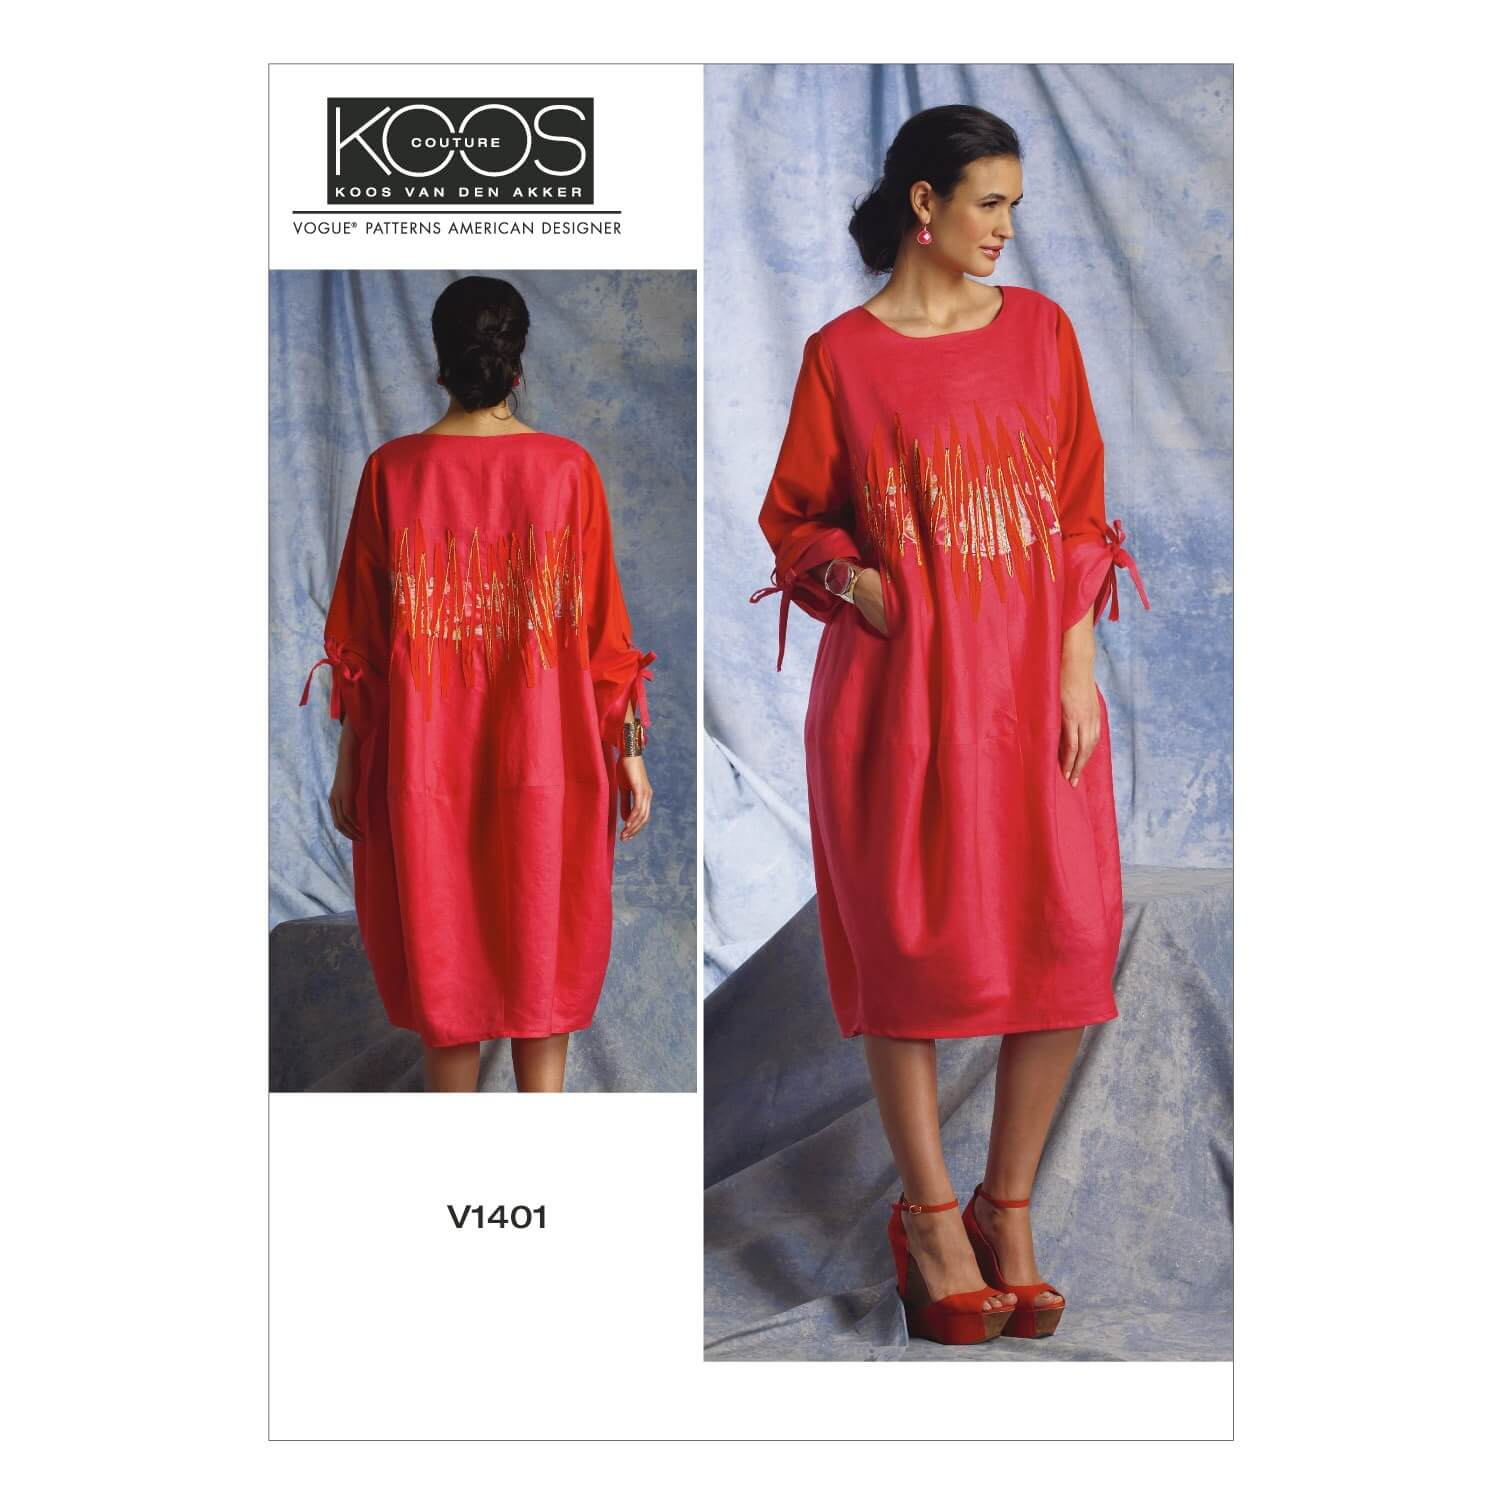 Vogue Sewing Pattern V1401 Women's Pullover Dress with Tie Sleeves